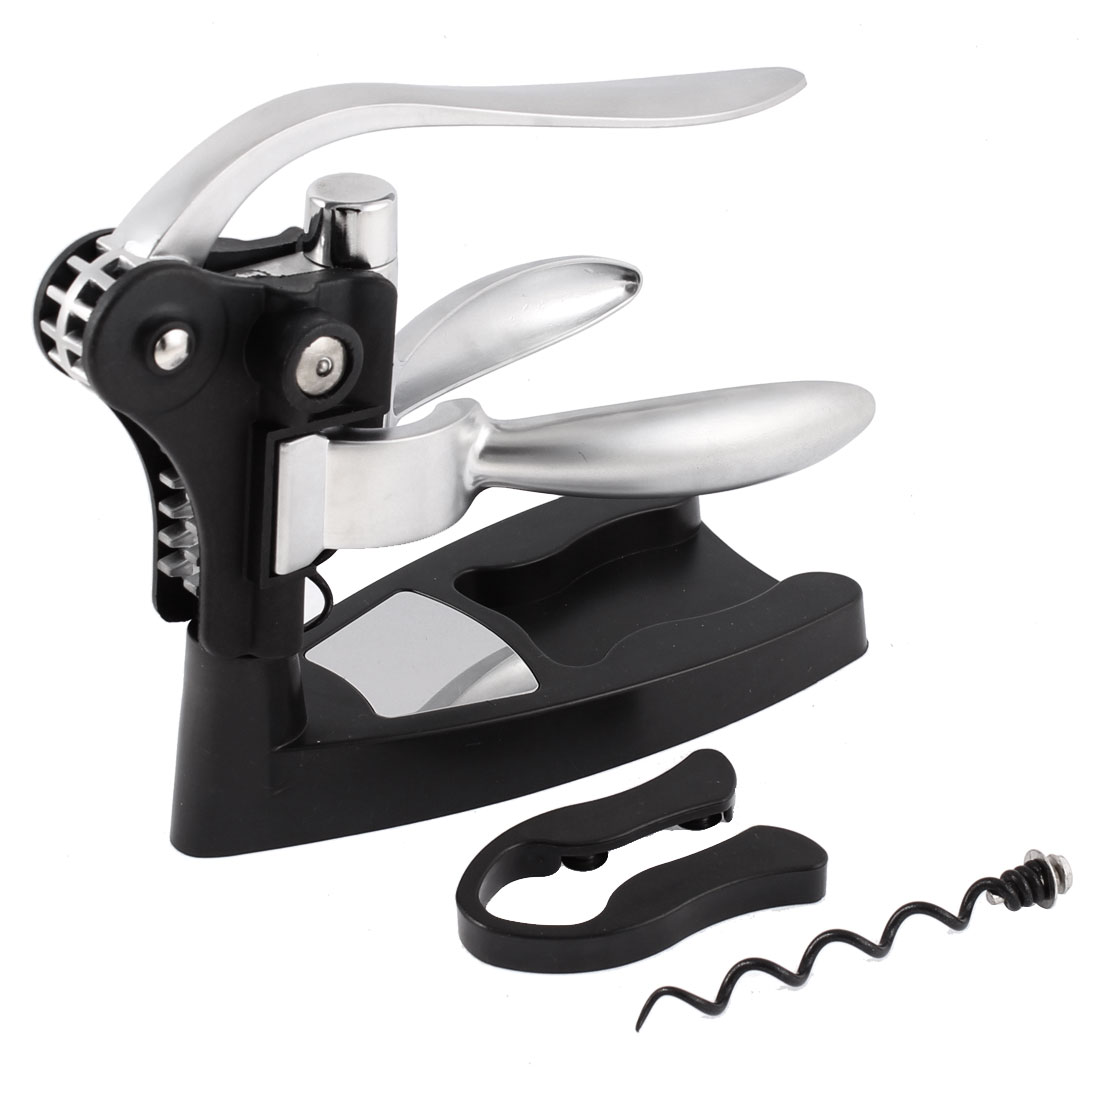 Rabit Head Wine Liquor Bottle Opener Corkscrew Foil Cutter Cork Screw Set Black